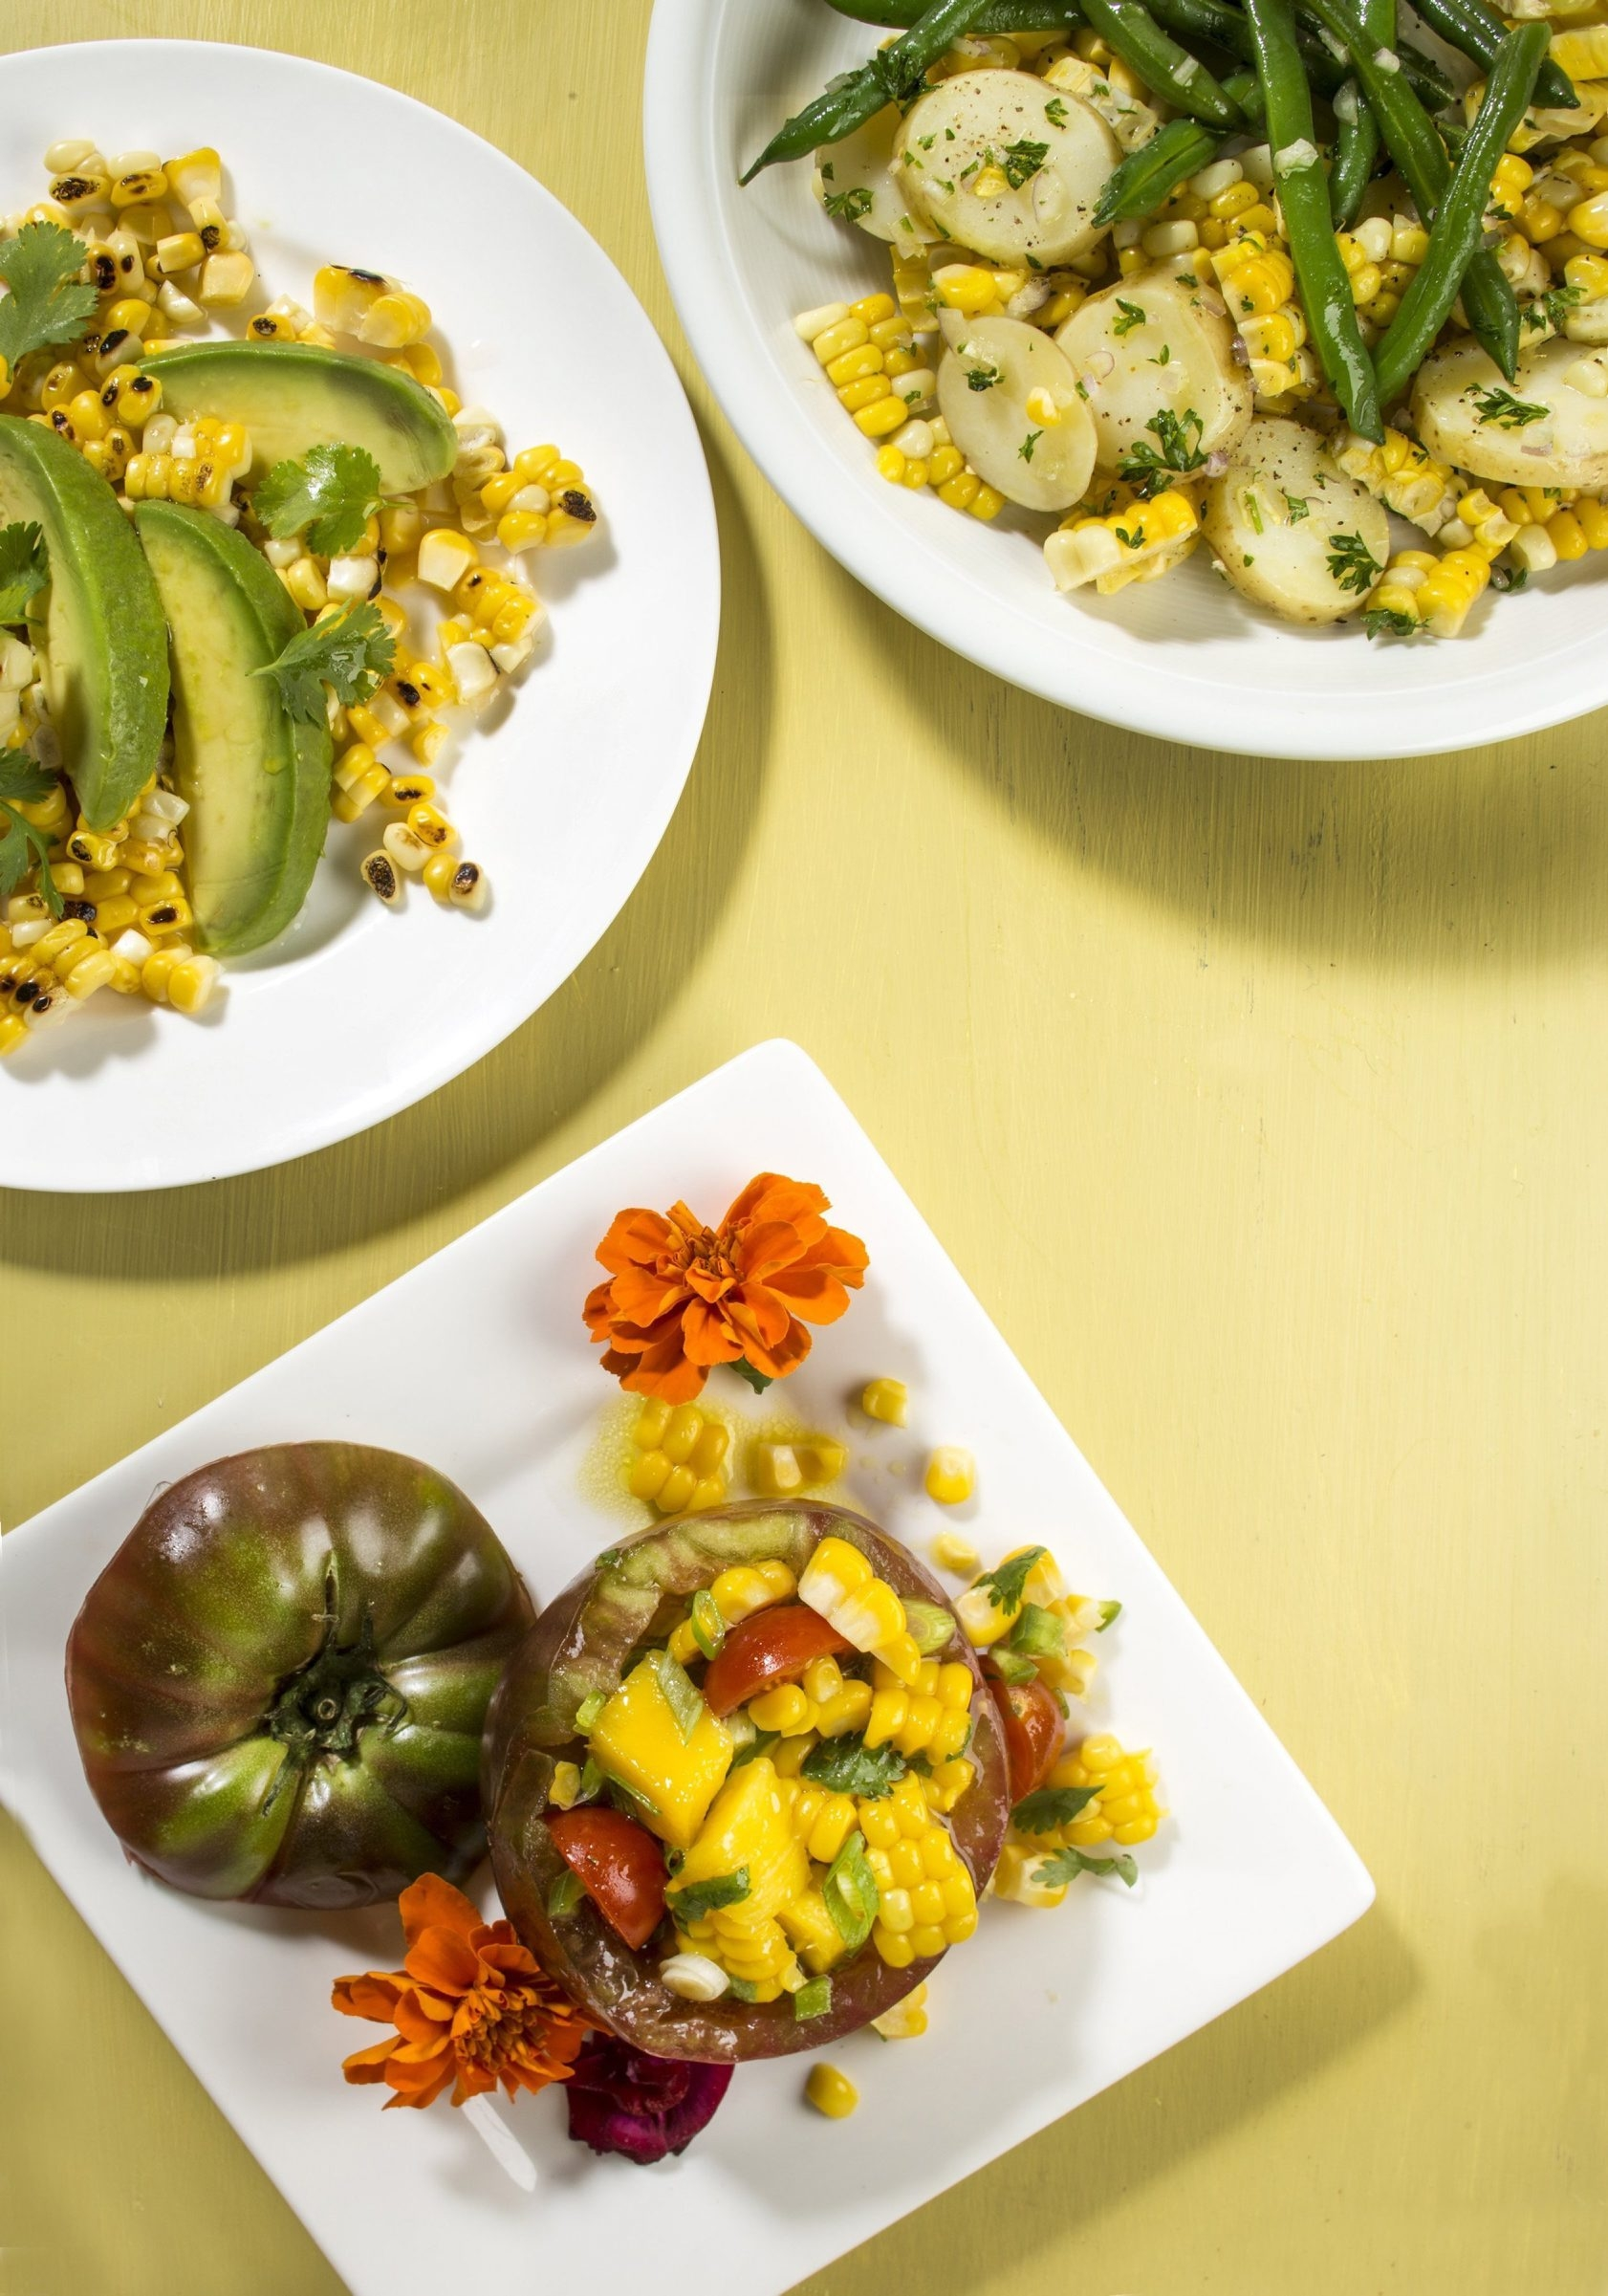 Embrace this summer's best produce and make corn salads including: corn, string bean and potato succotash salad, top right; grilled corn, avocado and cilantro, top left; and tomatoes stuffed with fresh corn and mango salad.